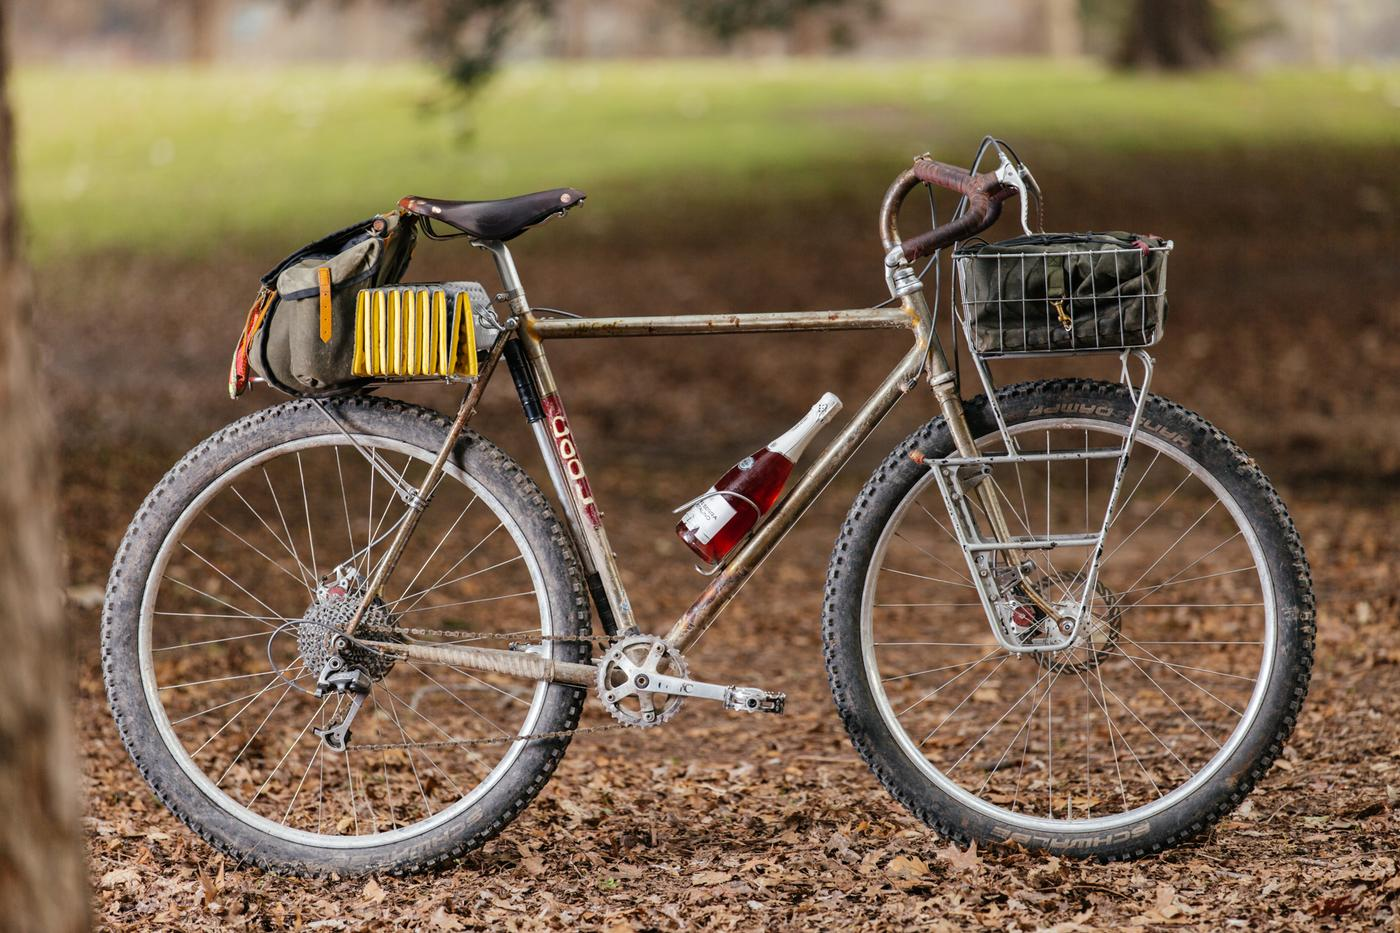 Benedict's Romantical Clockwork Bikes Dirt Droop 29'r